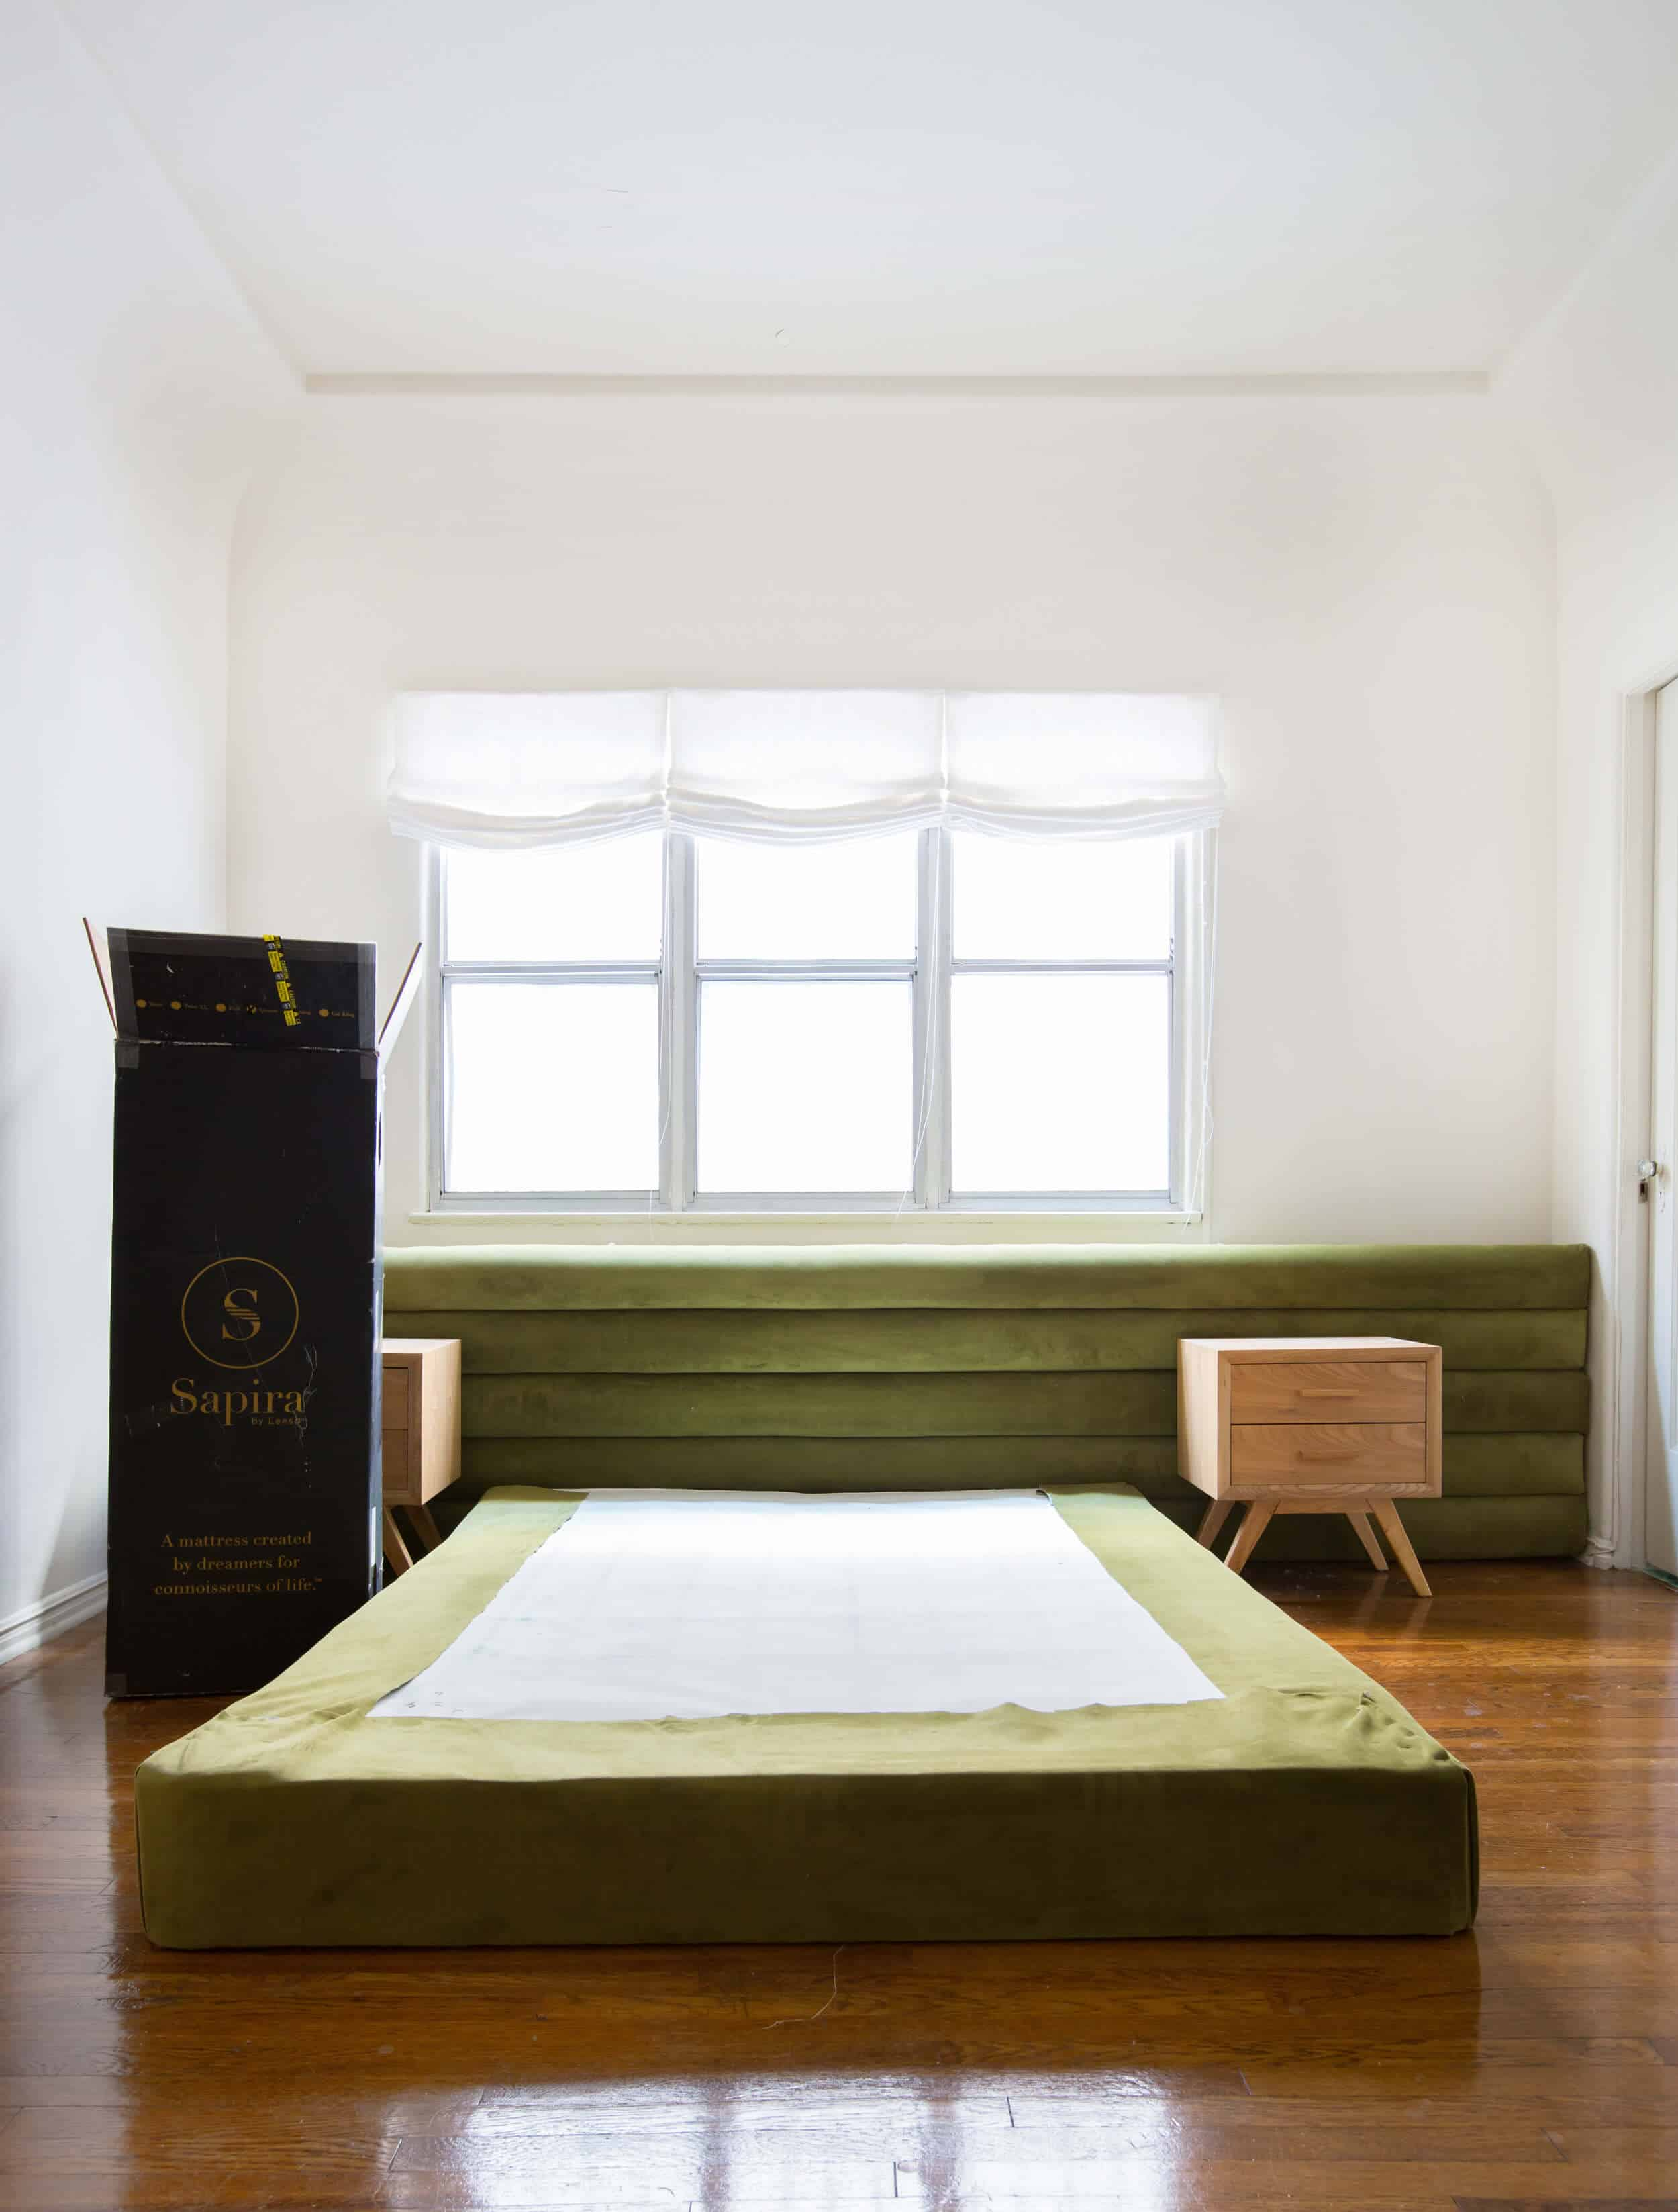 emily-henderson_sapira-mattress_diy-headboard_brady-tolbert_bedroom_green-velvet_channel-tufting_channel-tufted_masculine_boho_chic_headboard_1